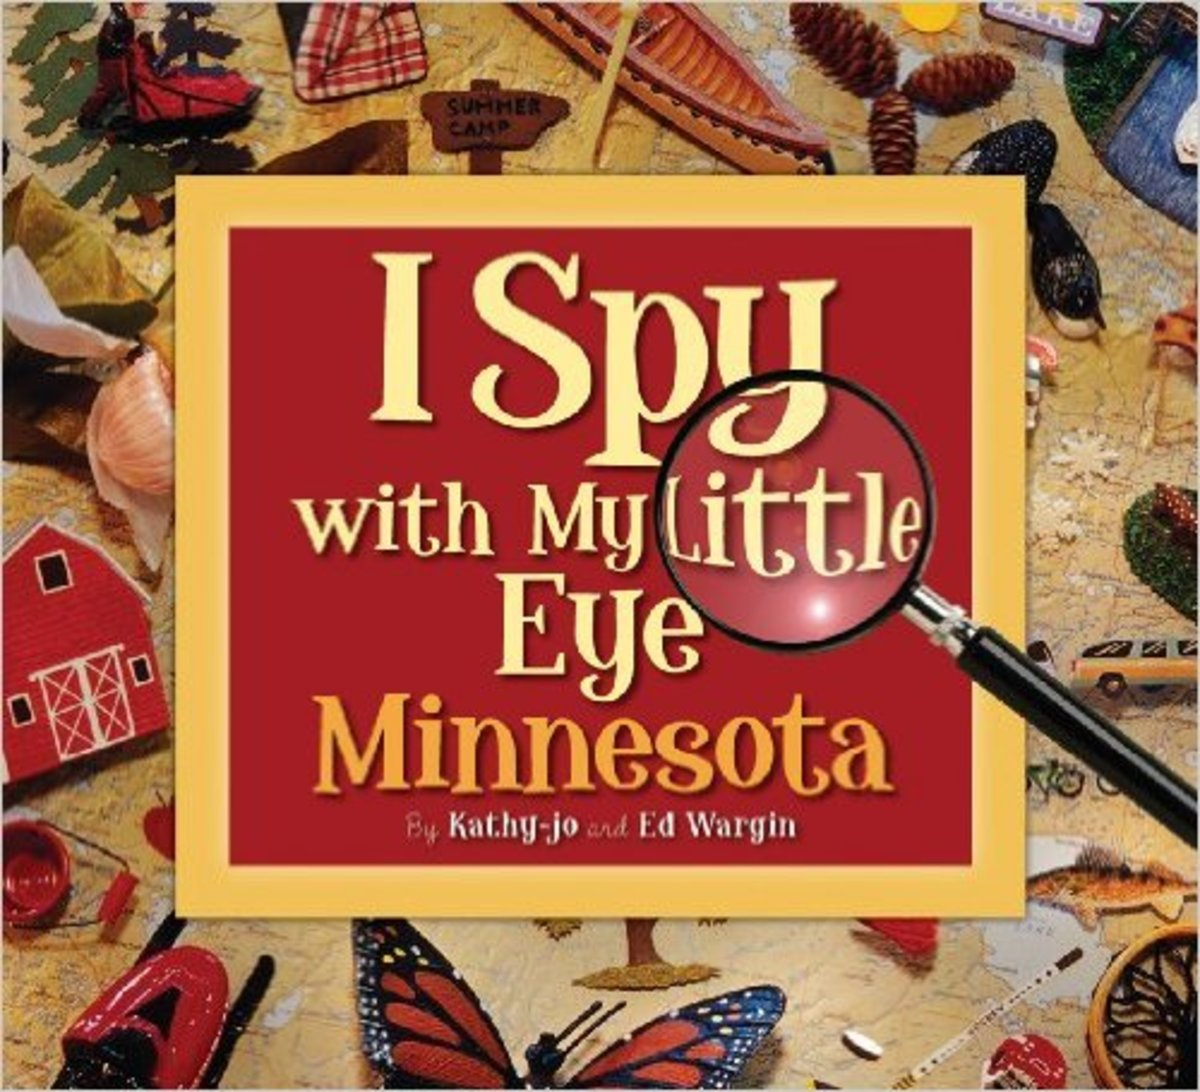 I Spy with My Little Eye Minnesota by Kathy-jo Wargin